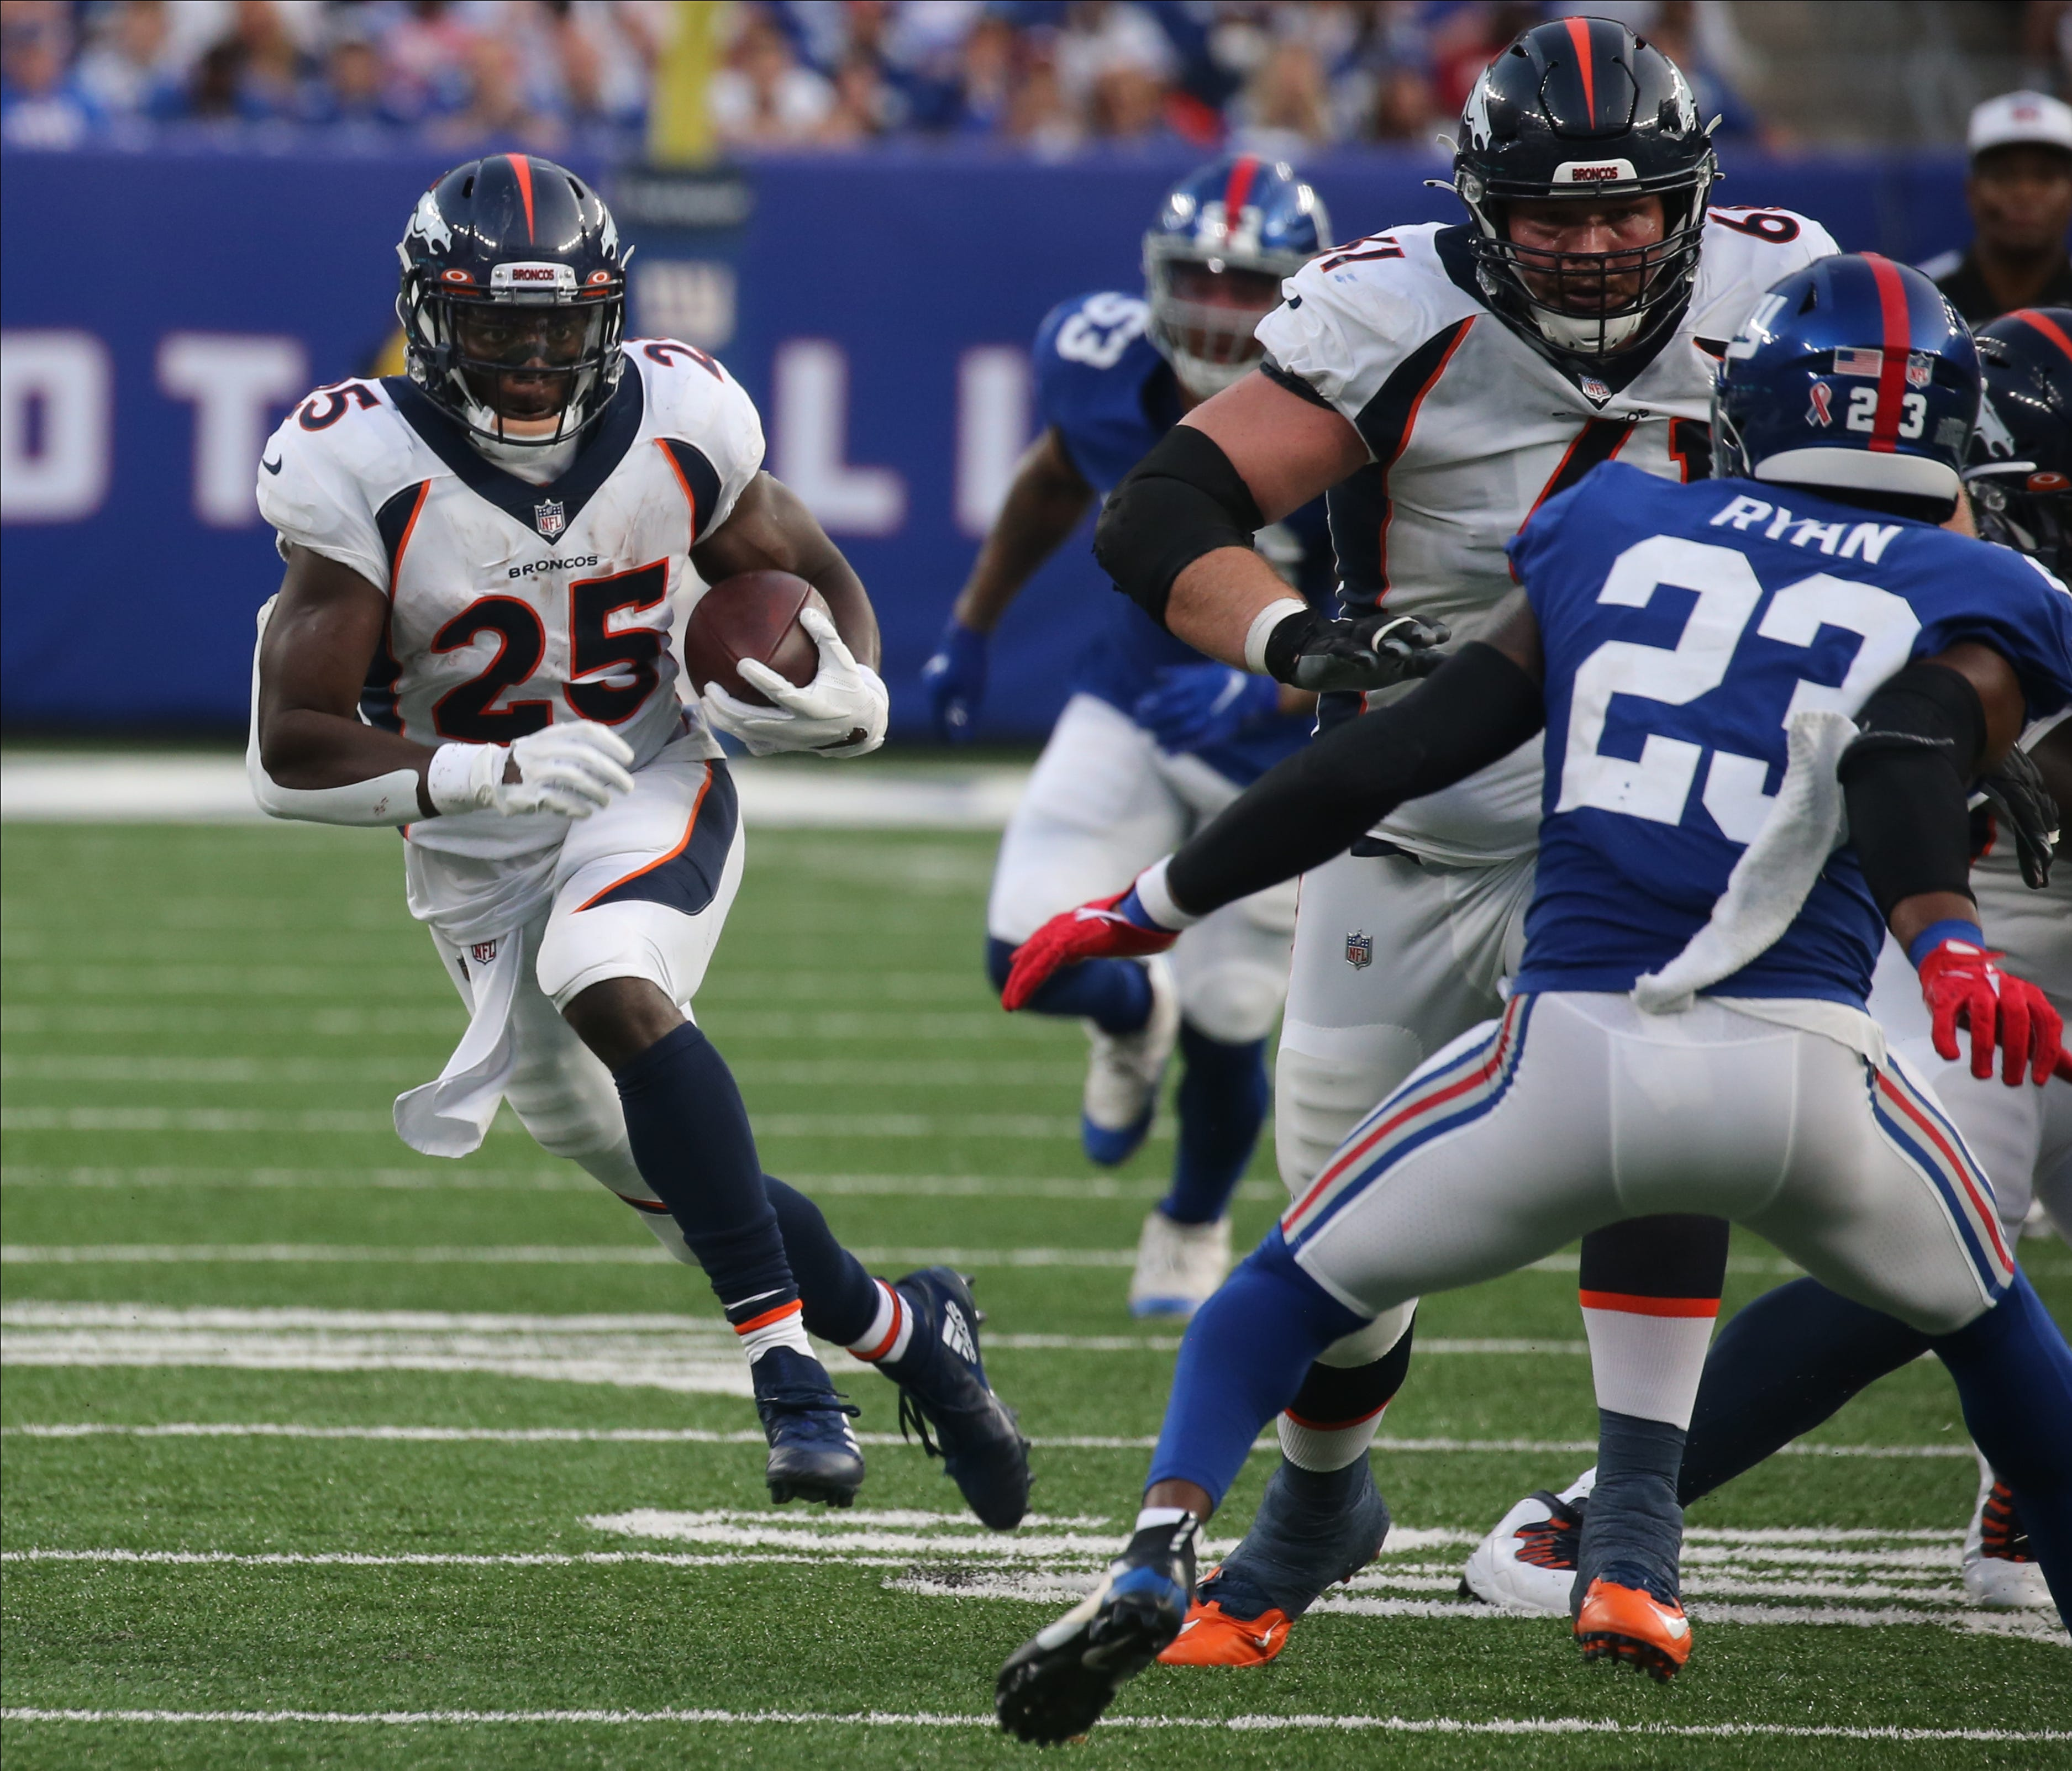 Melvin Gordon of Denver runs the ball in the fourth quarter as the Denver Broncos came to MetLife Stadium in East Rutherford, NJ and beat the New York Giants 27-13